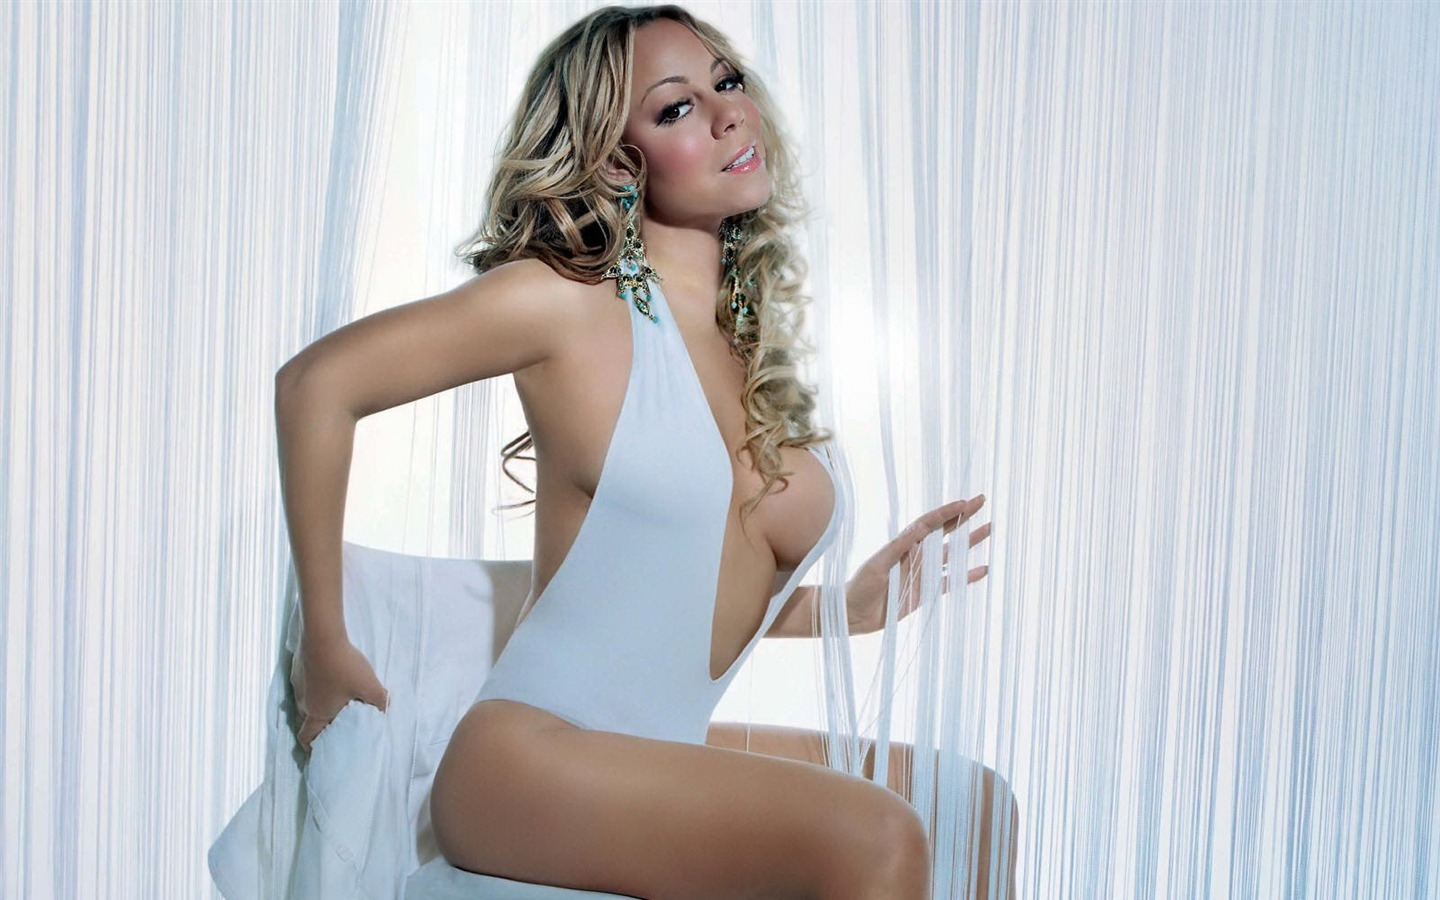 Mariah Carey #037 - 1440x900 Wallpapers Pictures Photos Images